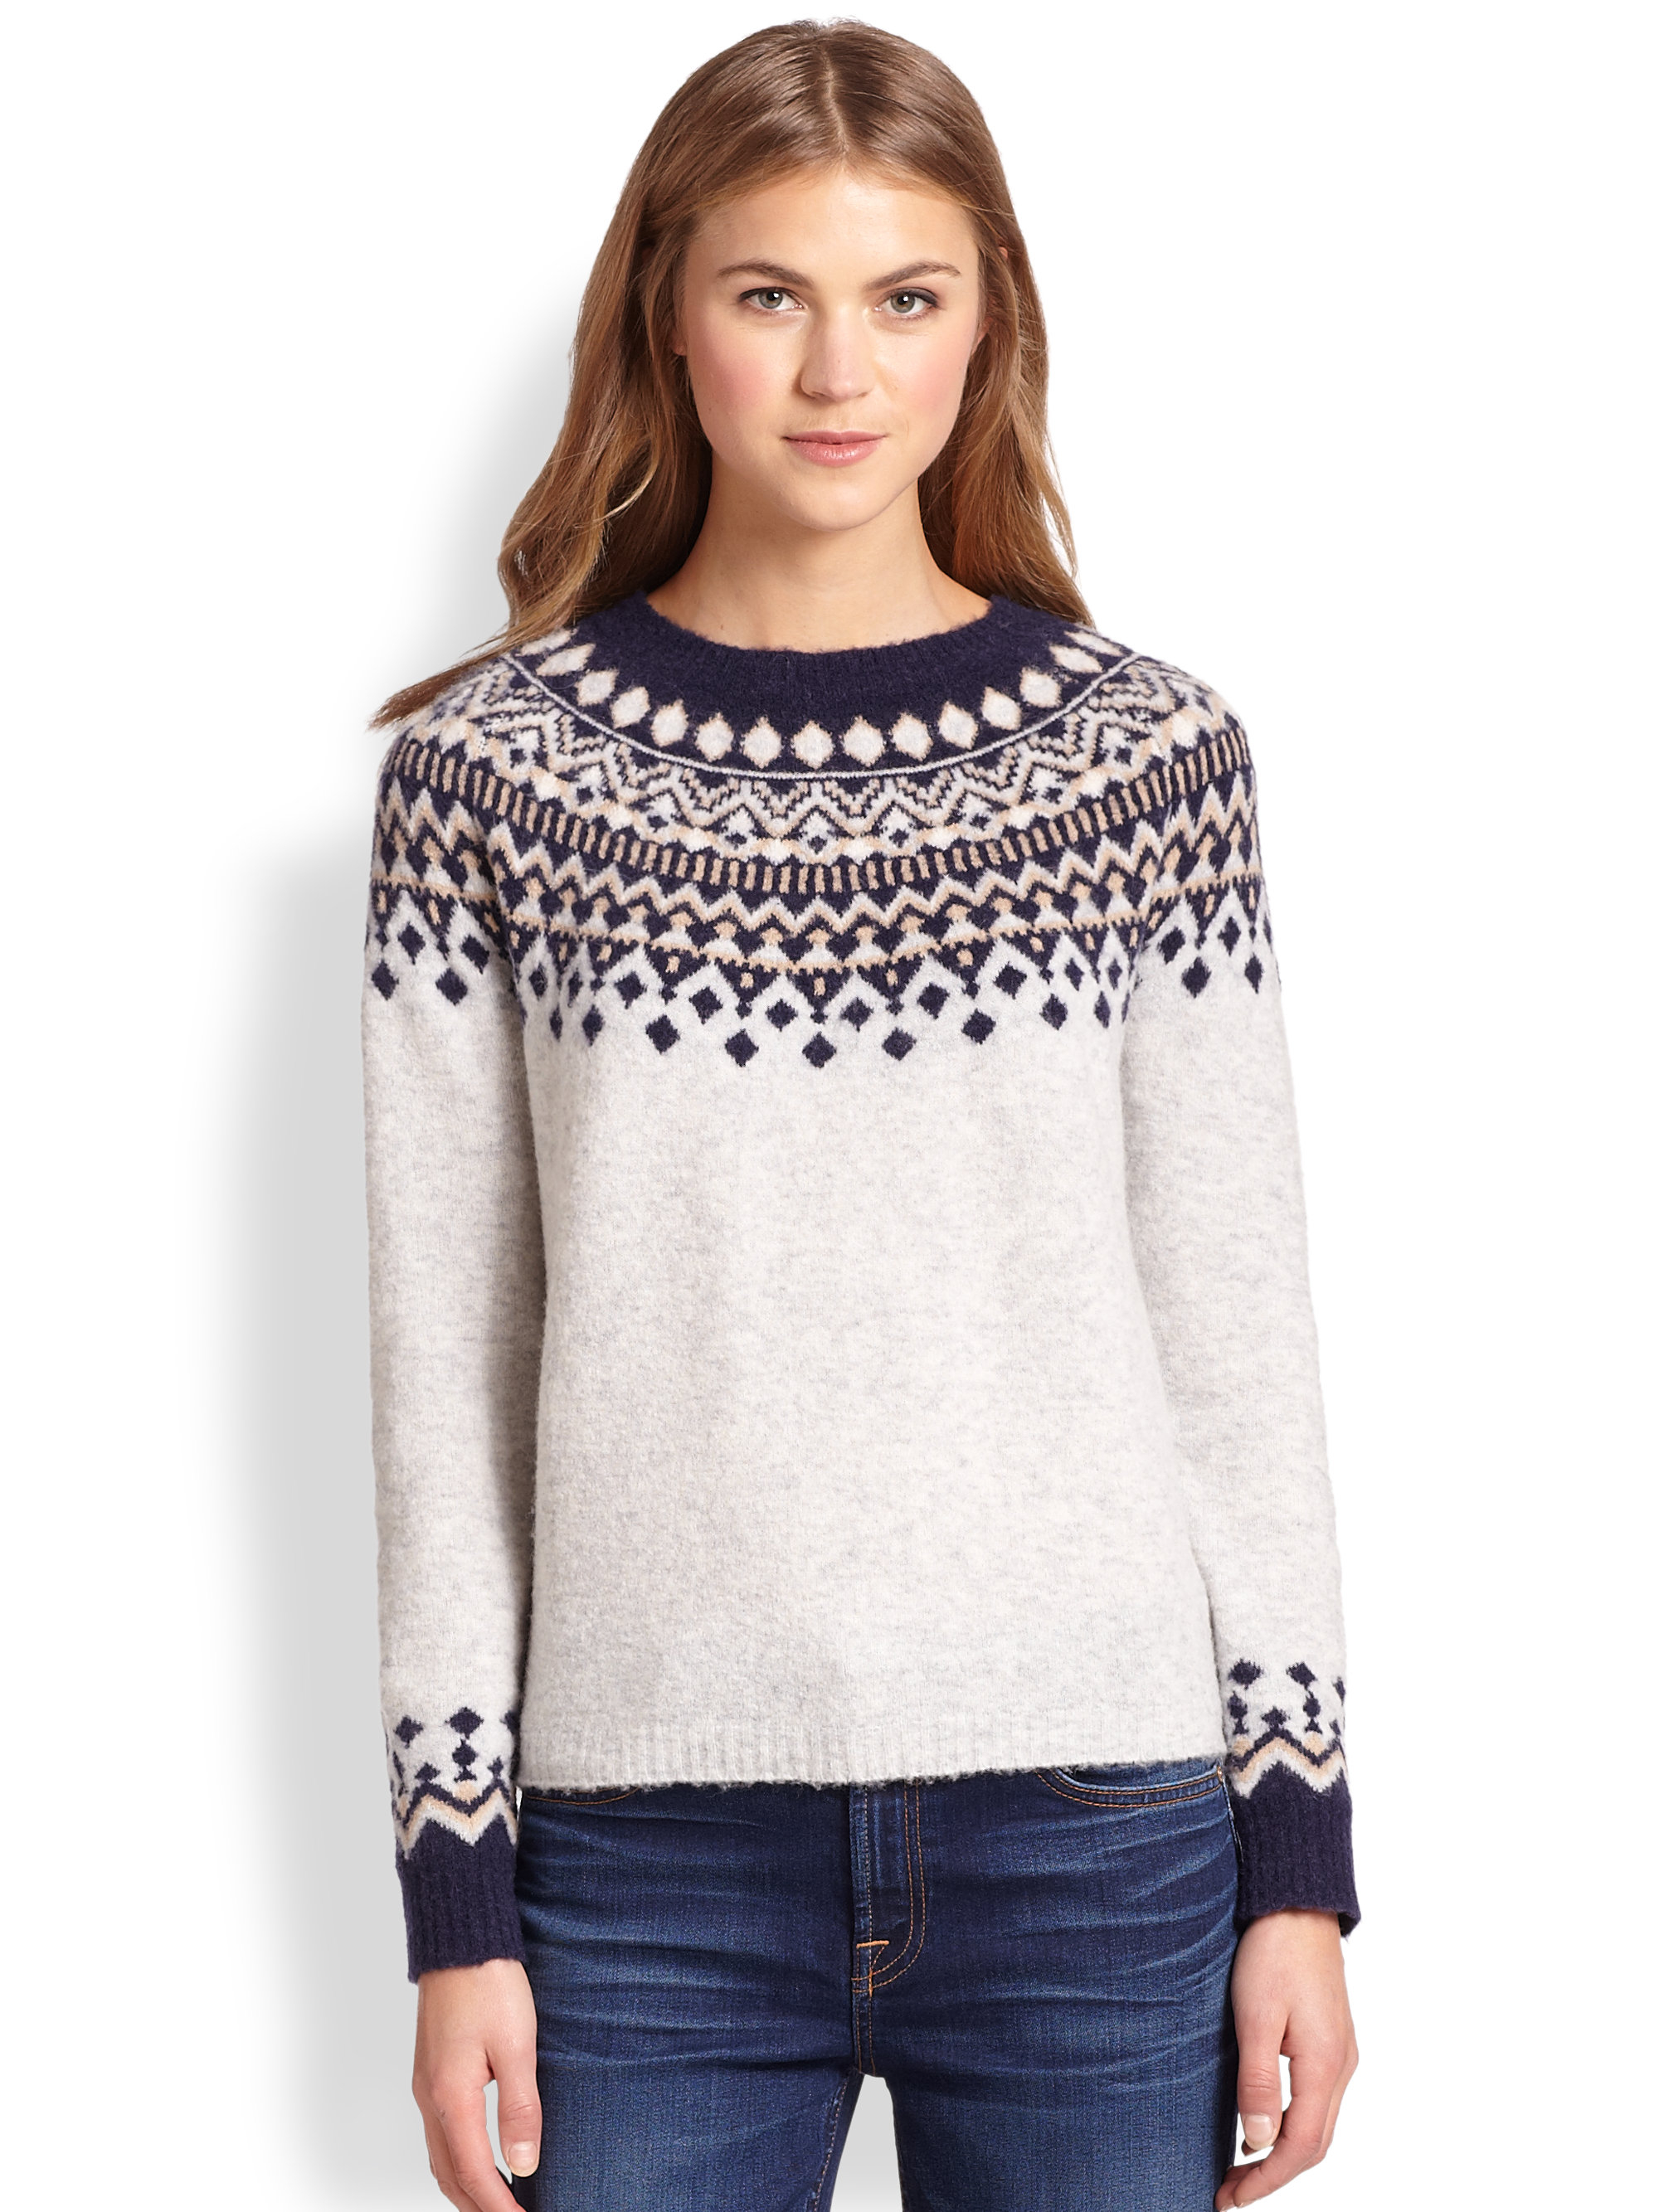 joie fair isle sweater her sweater. Black Bedroom Furniture Sets. Home Design Ideas